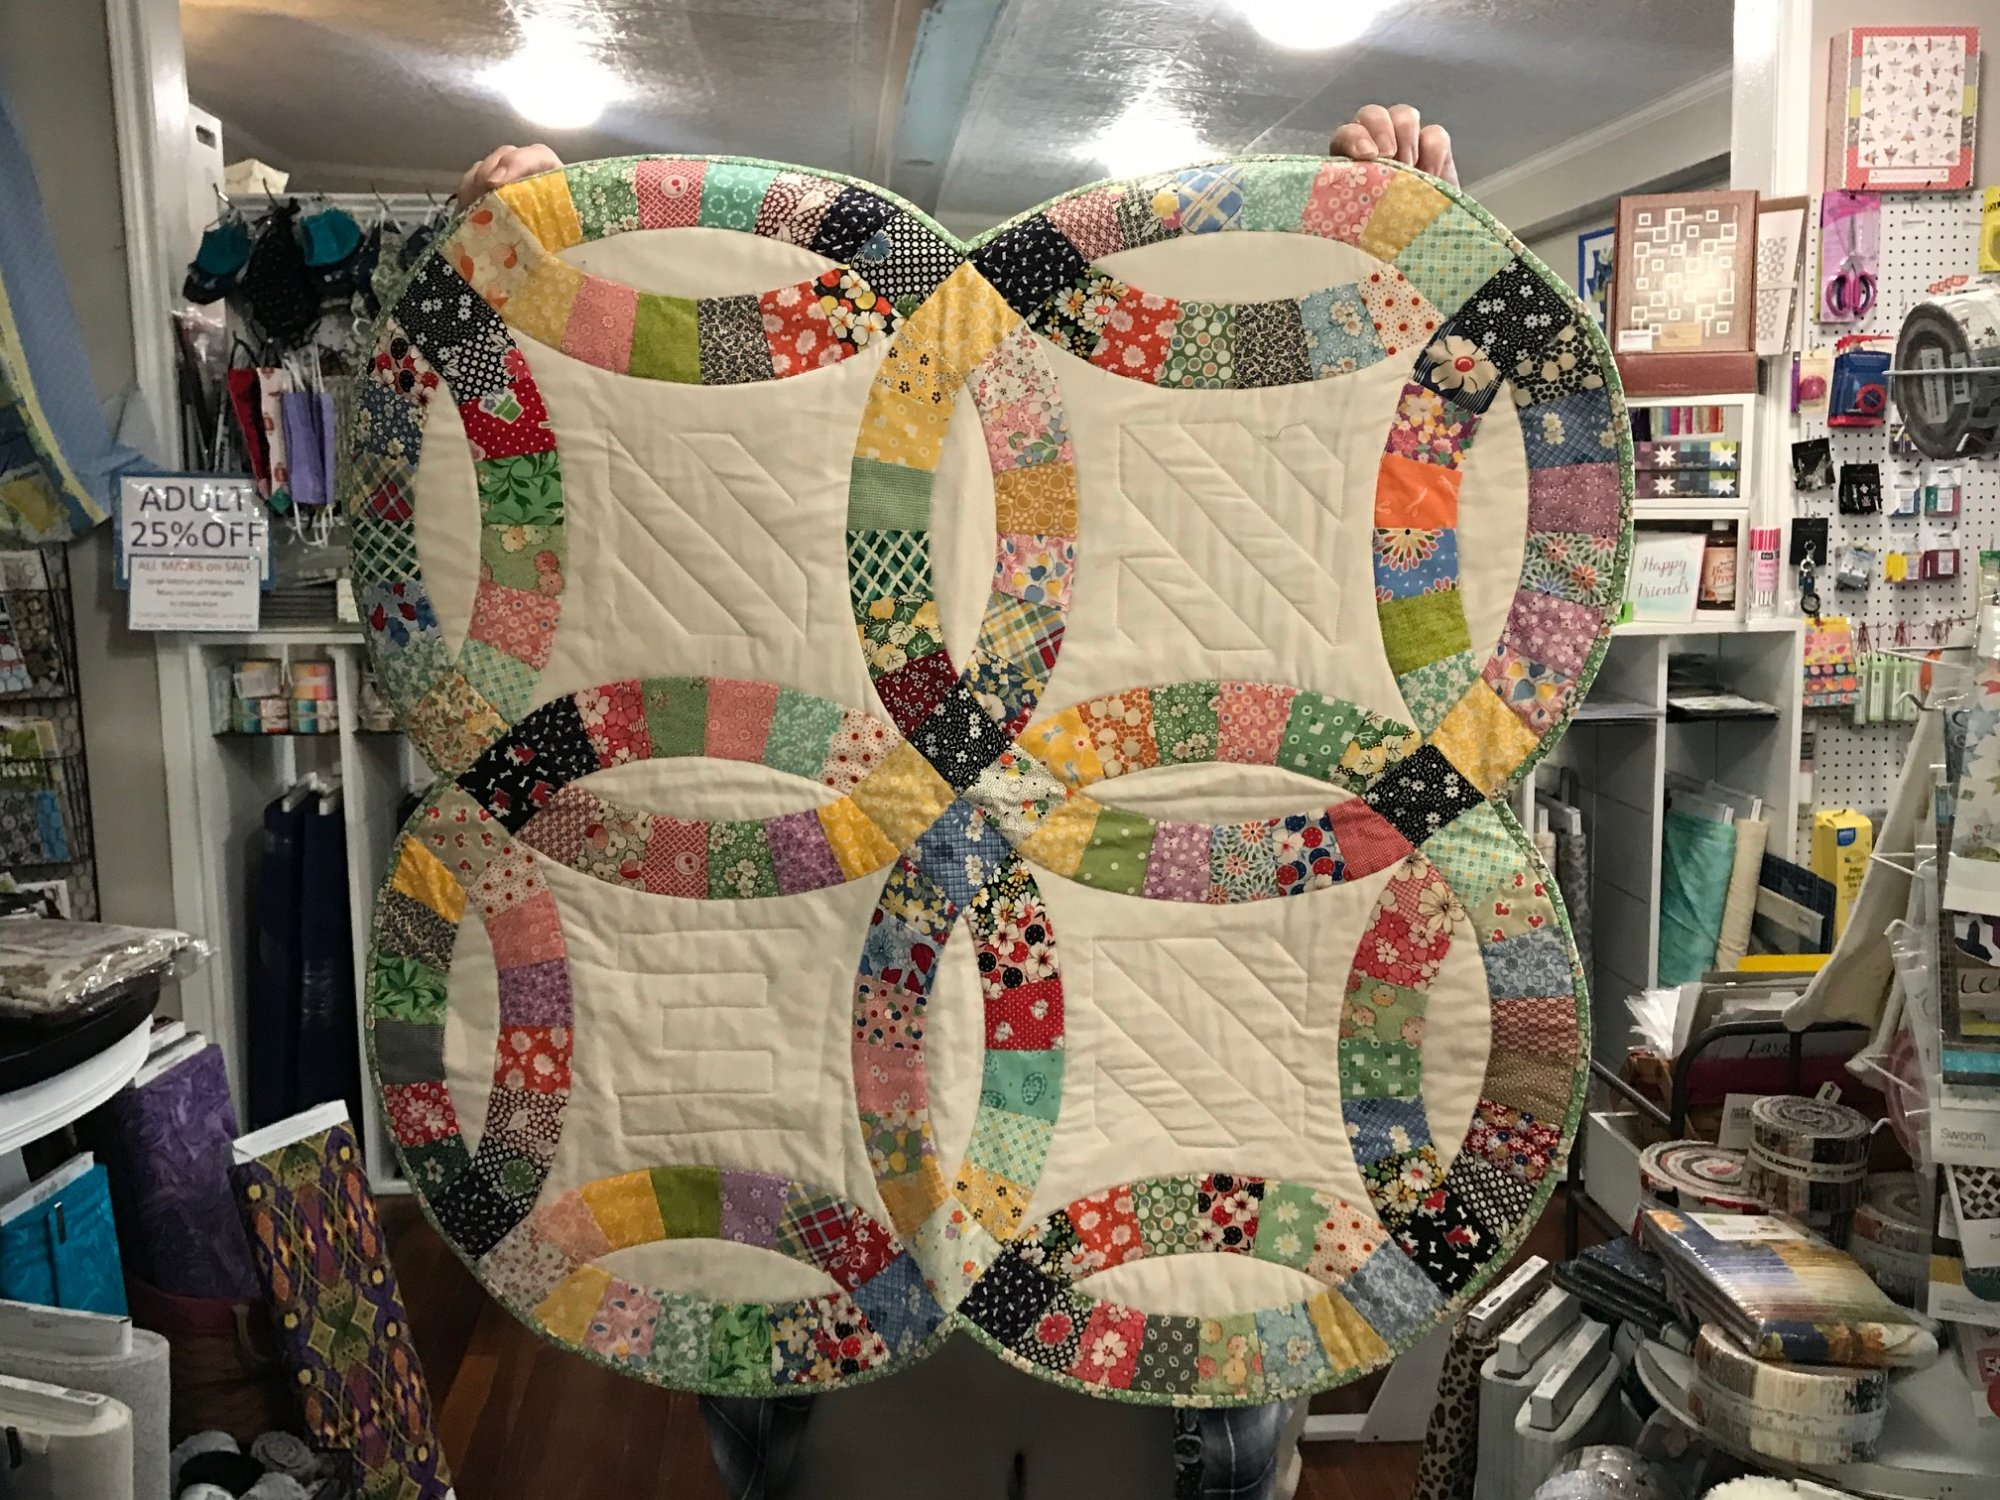 Double Wedding Ring Tabletop Quilt 28 x 28, Finished Quilt